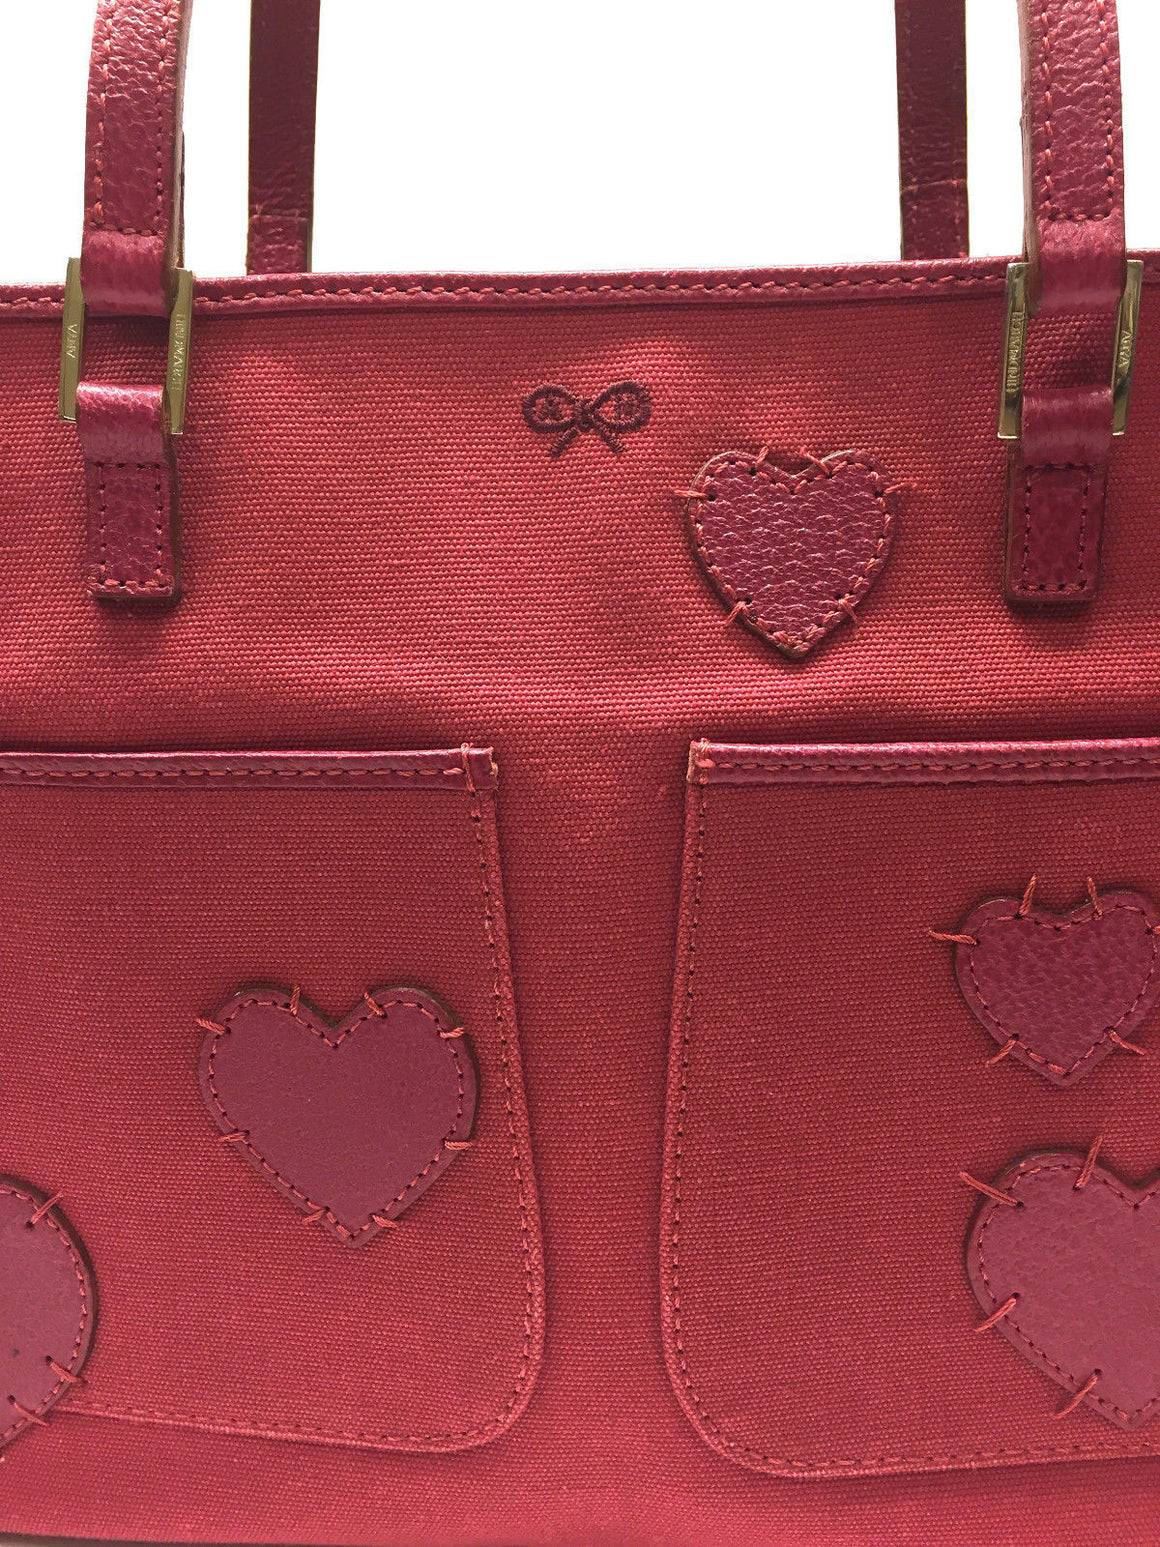 bisbiz.com ANYA HINDMARCH   Strawberry Pink Canvas Bag with Leather Hearts Accent - Bis Luxury Resale